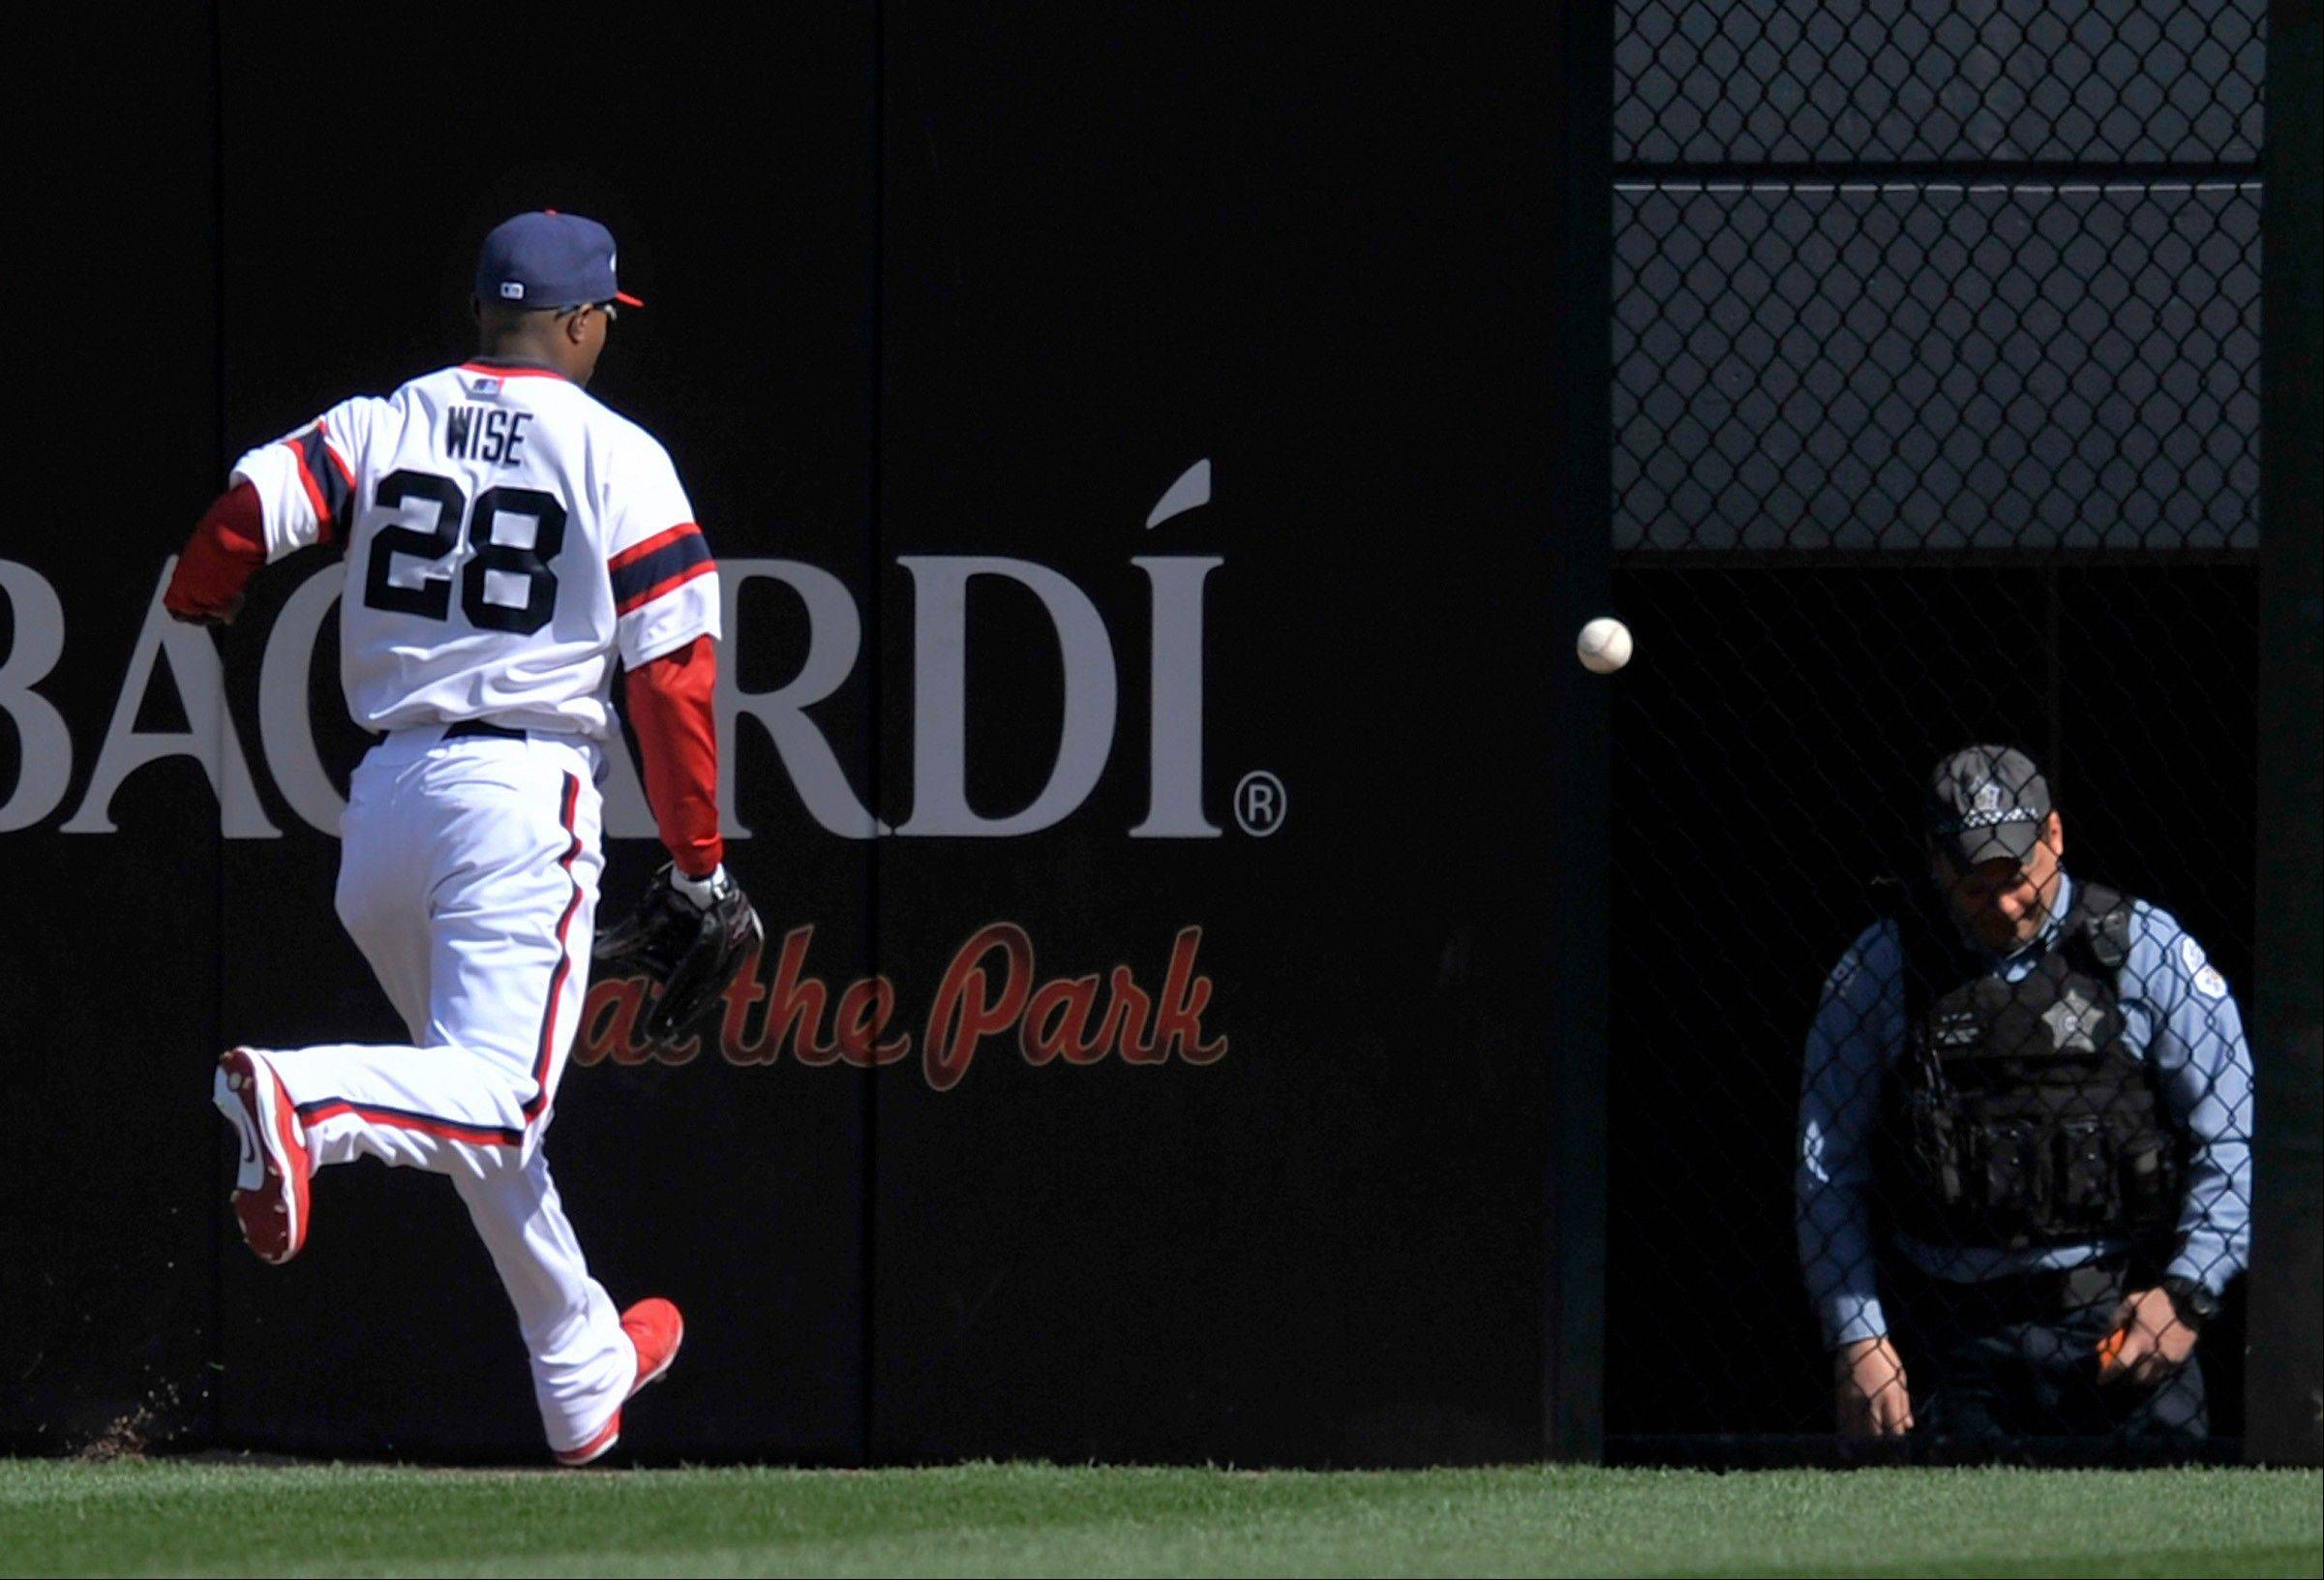 White Sox center fielder Dewayne Wise chases down a 3-run double by the Twins' Josh Willingham during the seventh inning Sunday at U.S. Cellular Field.